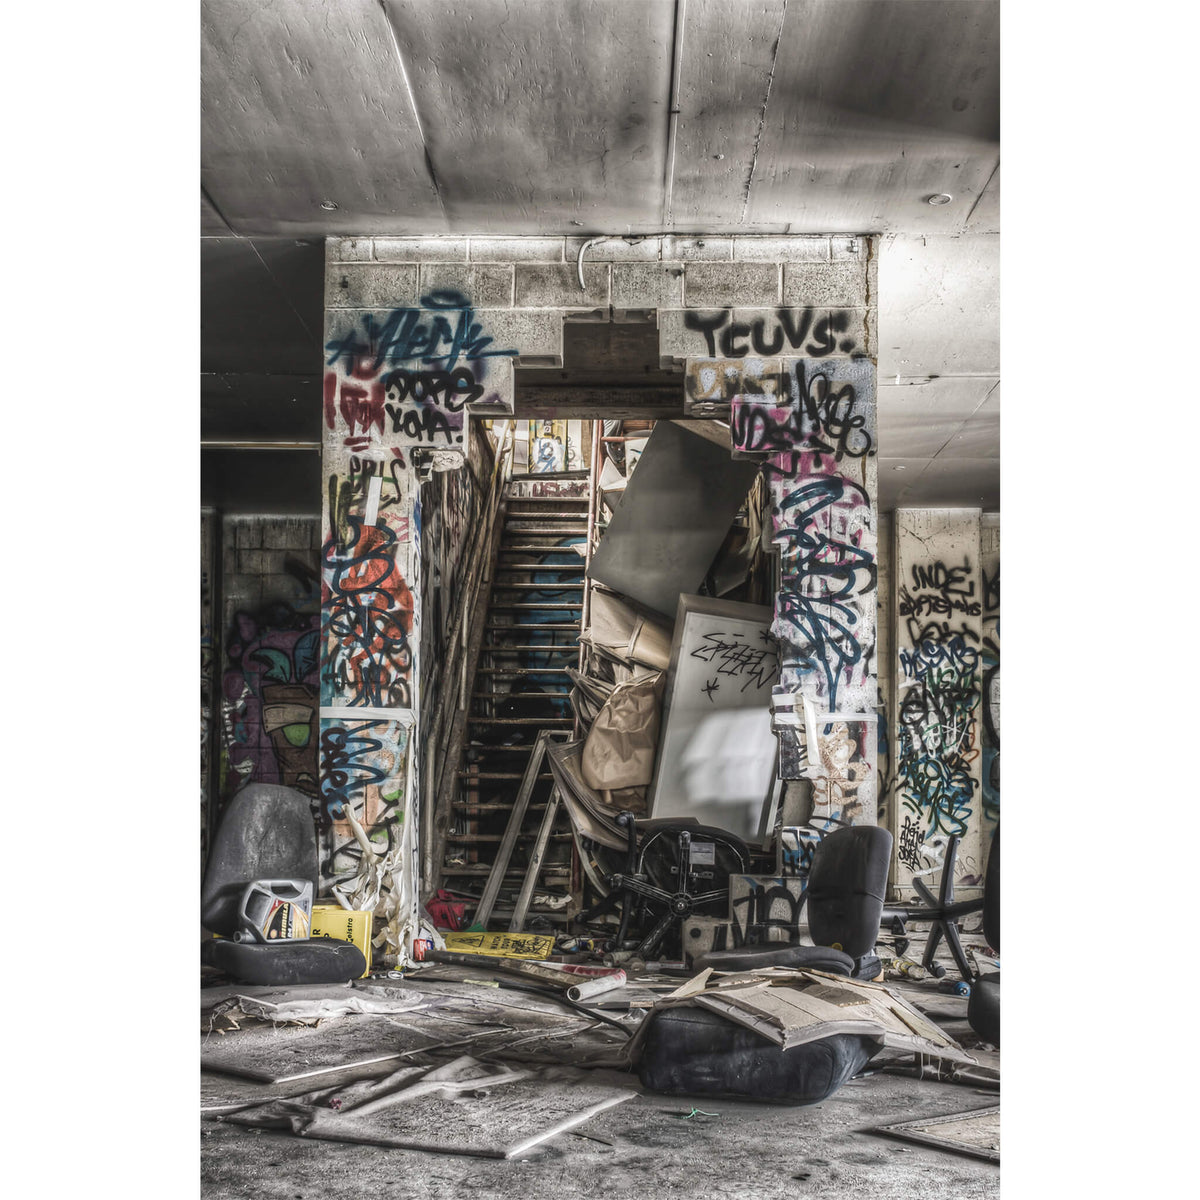 Basement to First Floor | Abandoned Bakery Fine Art Print - Lost Collective Shop